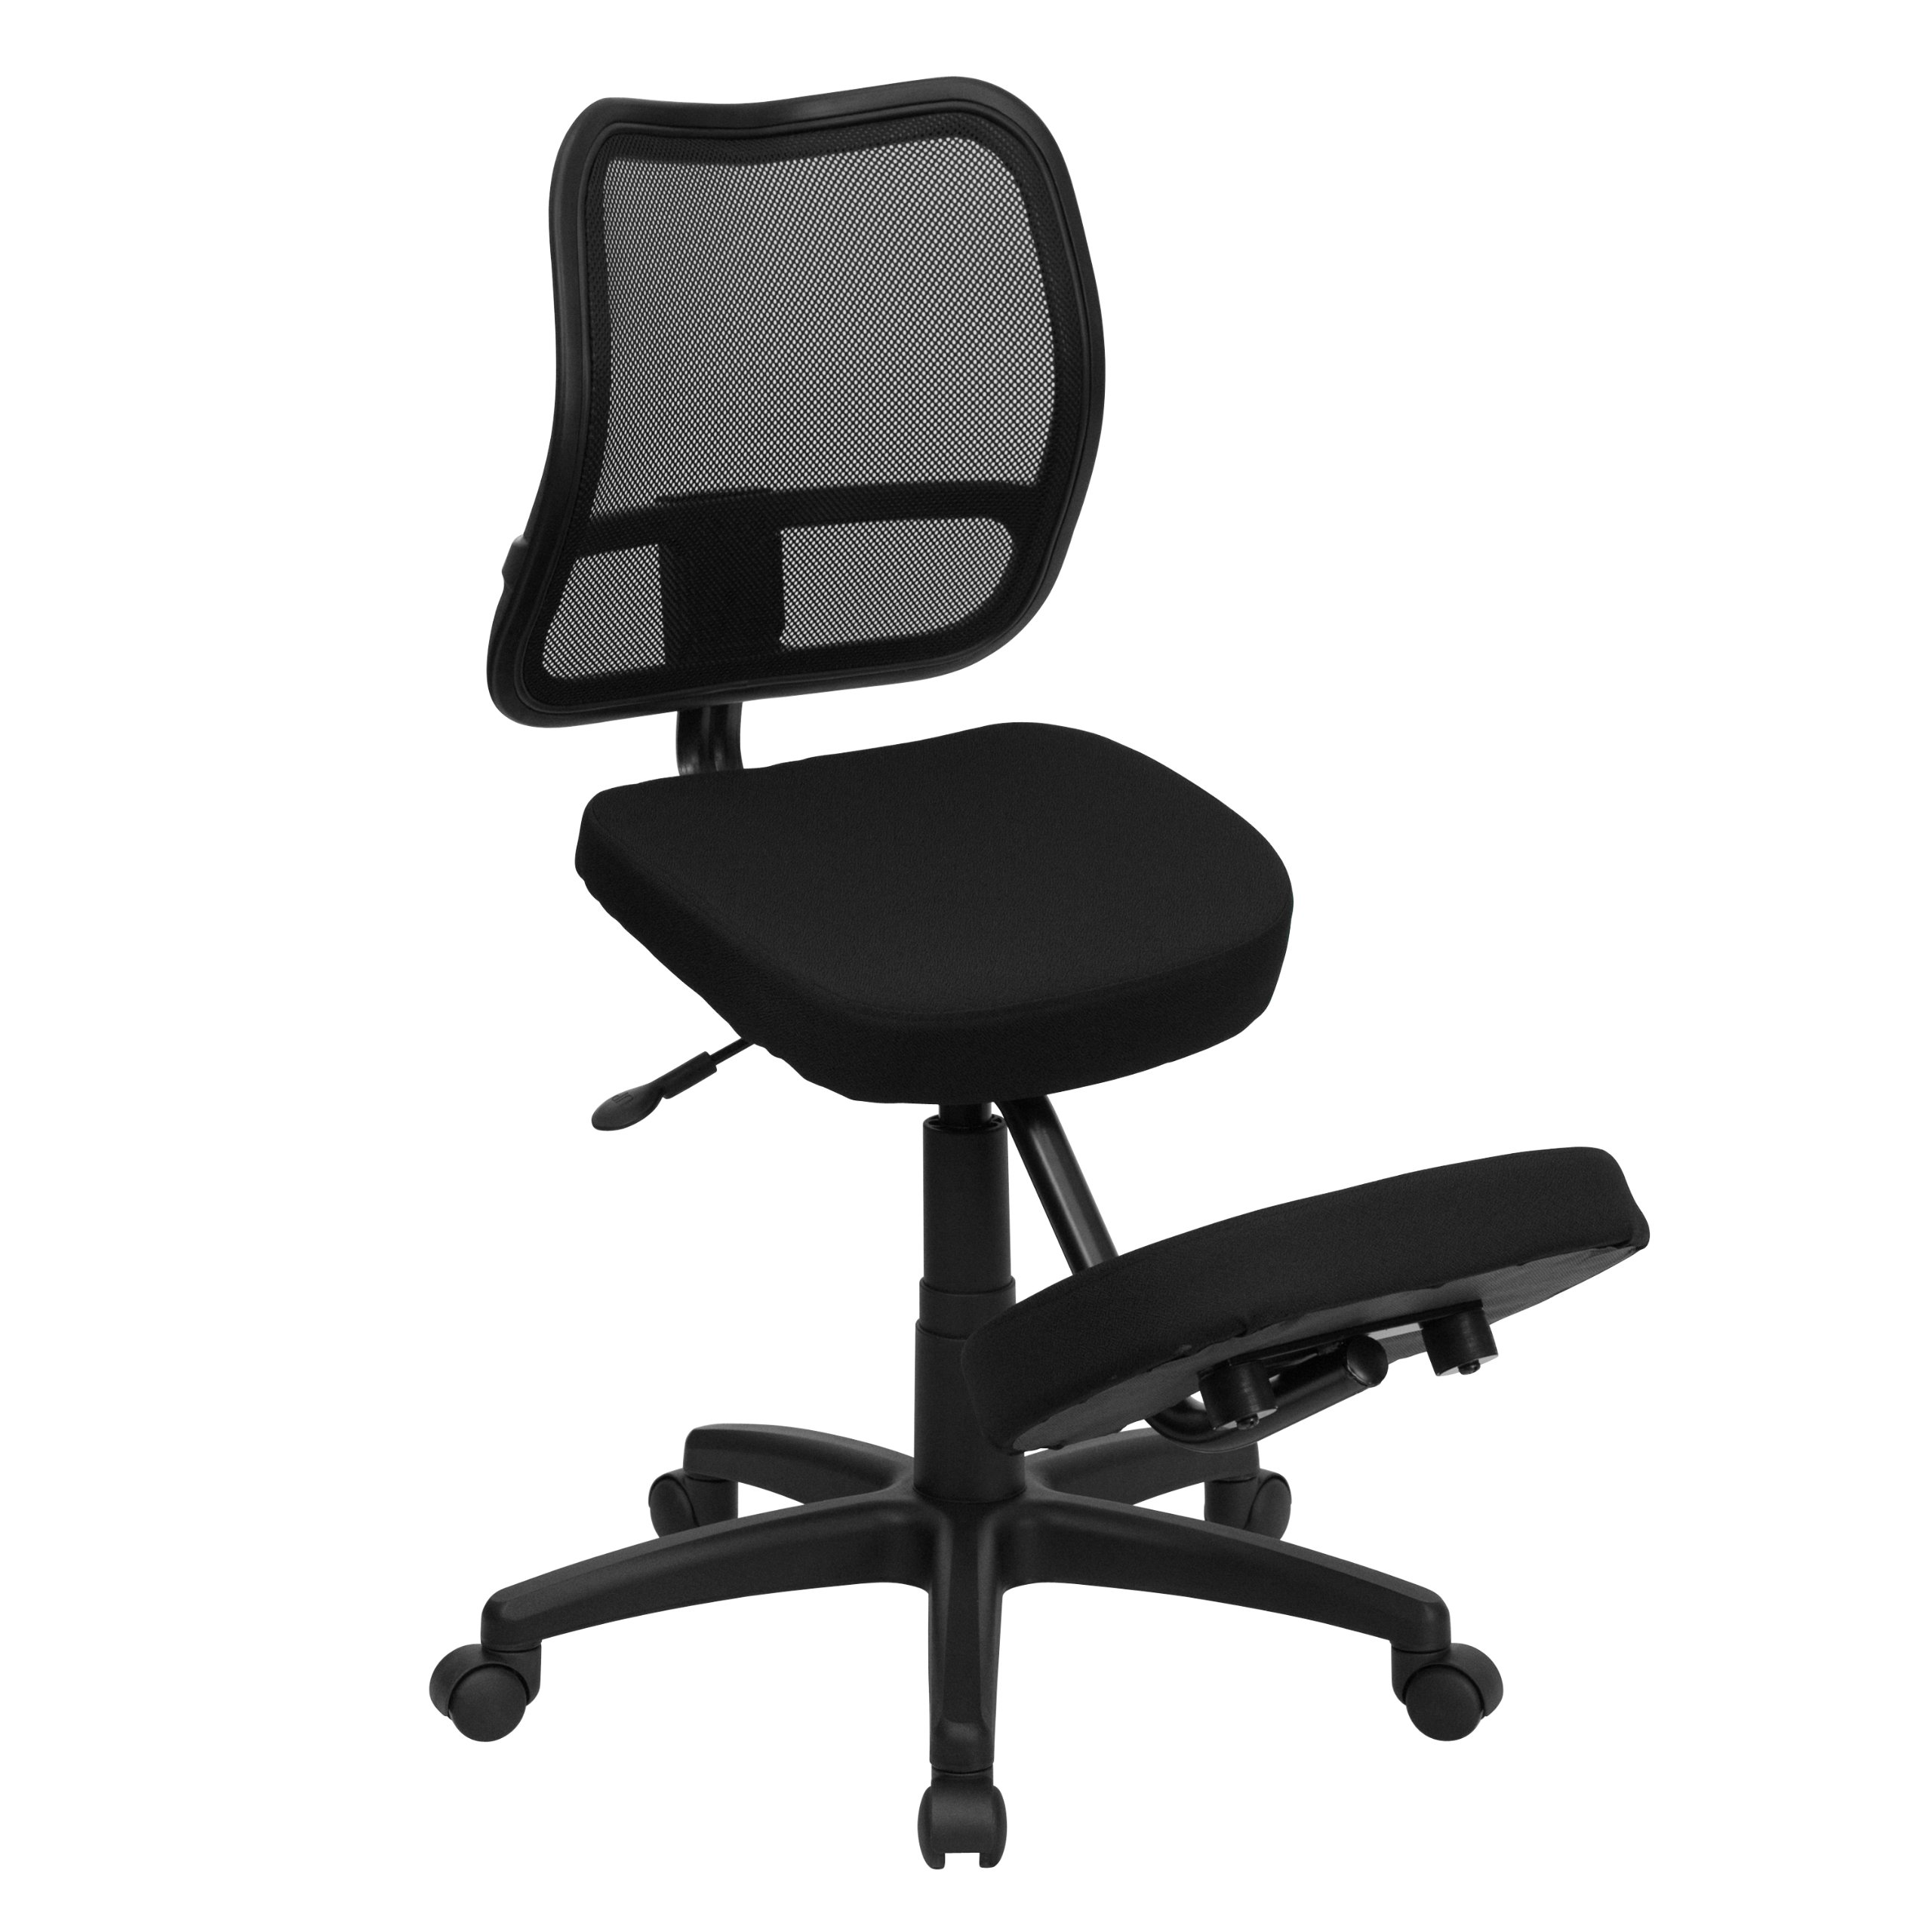 MFO Mobile Ergonomic Kneeling Task Chair with Black Curved Mesh Back and Fabric Seat